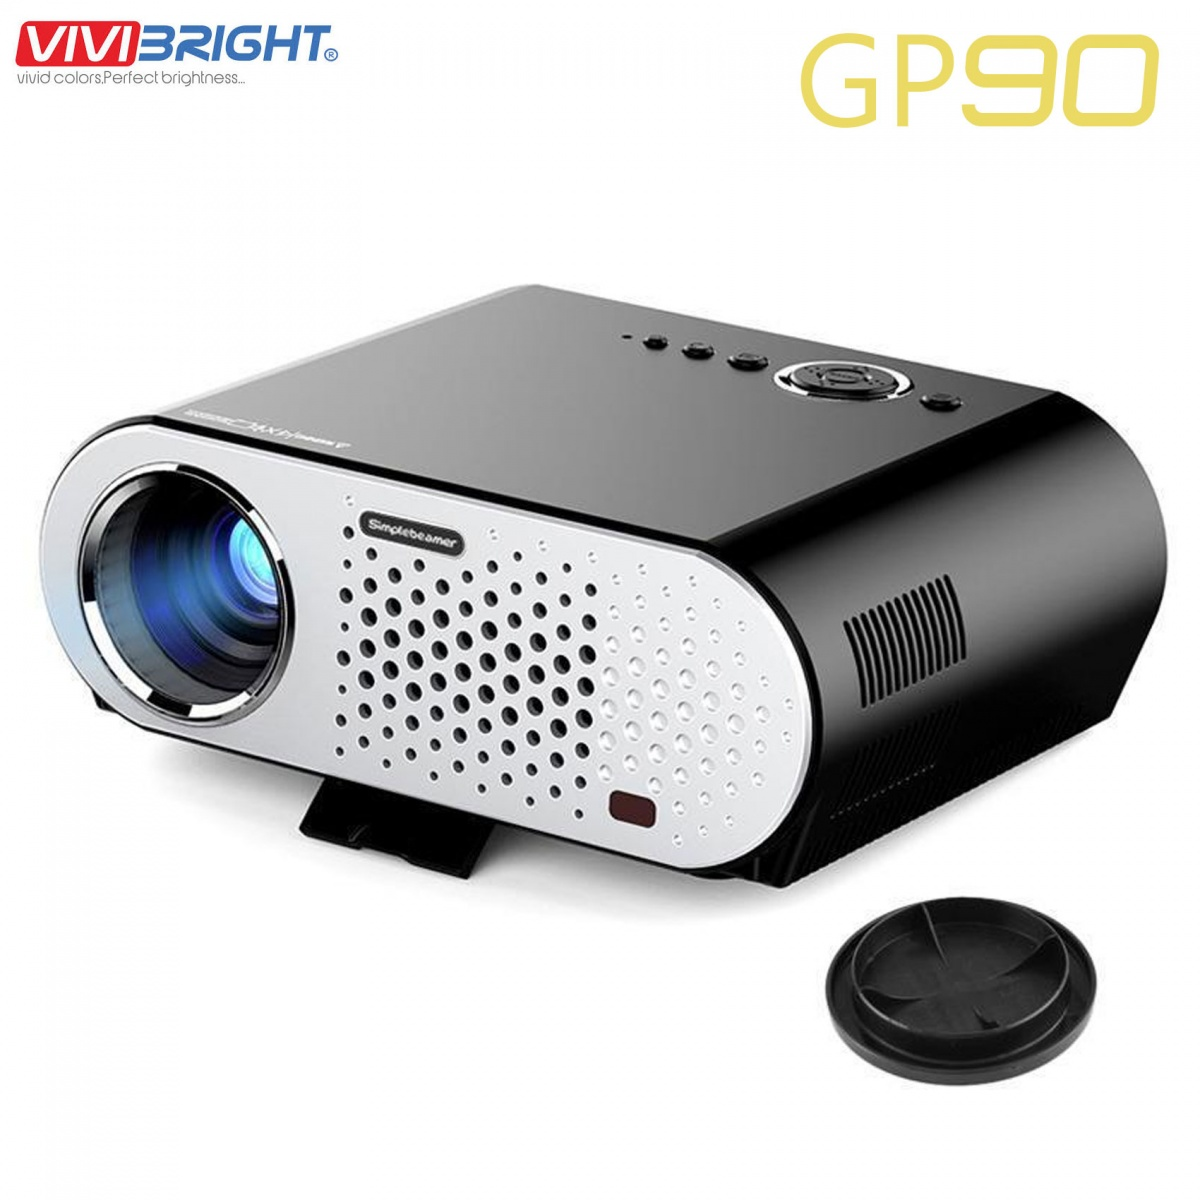 Vivibright GP90 3200 Lumen HD Projector - Black